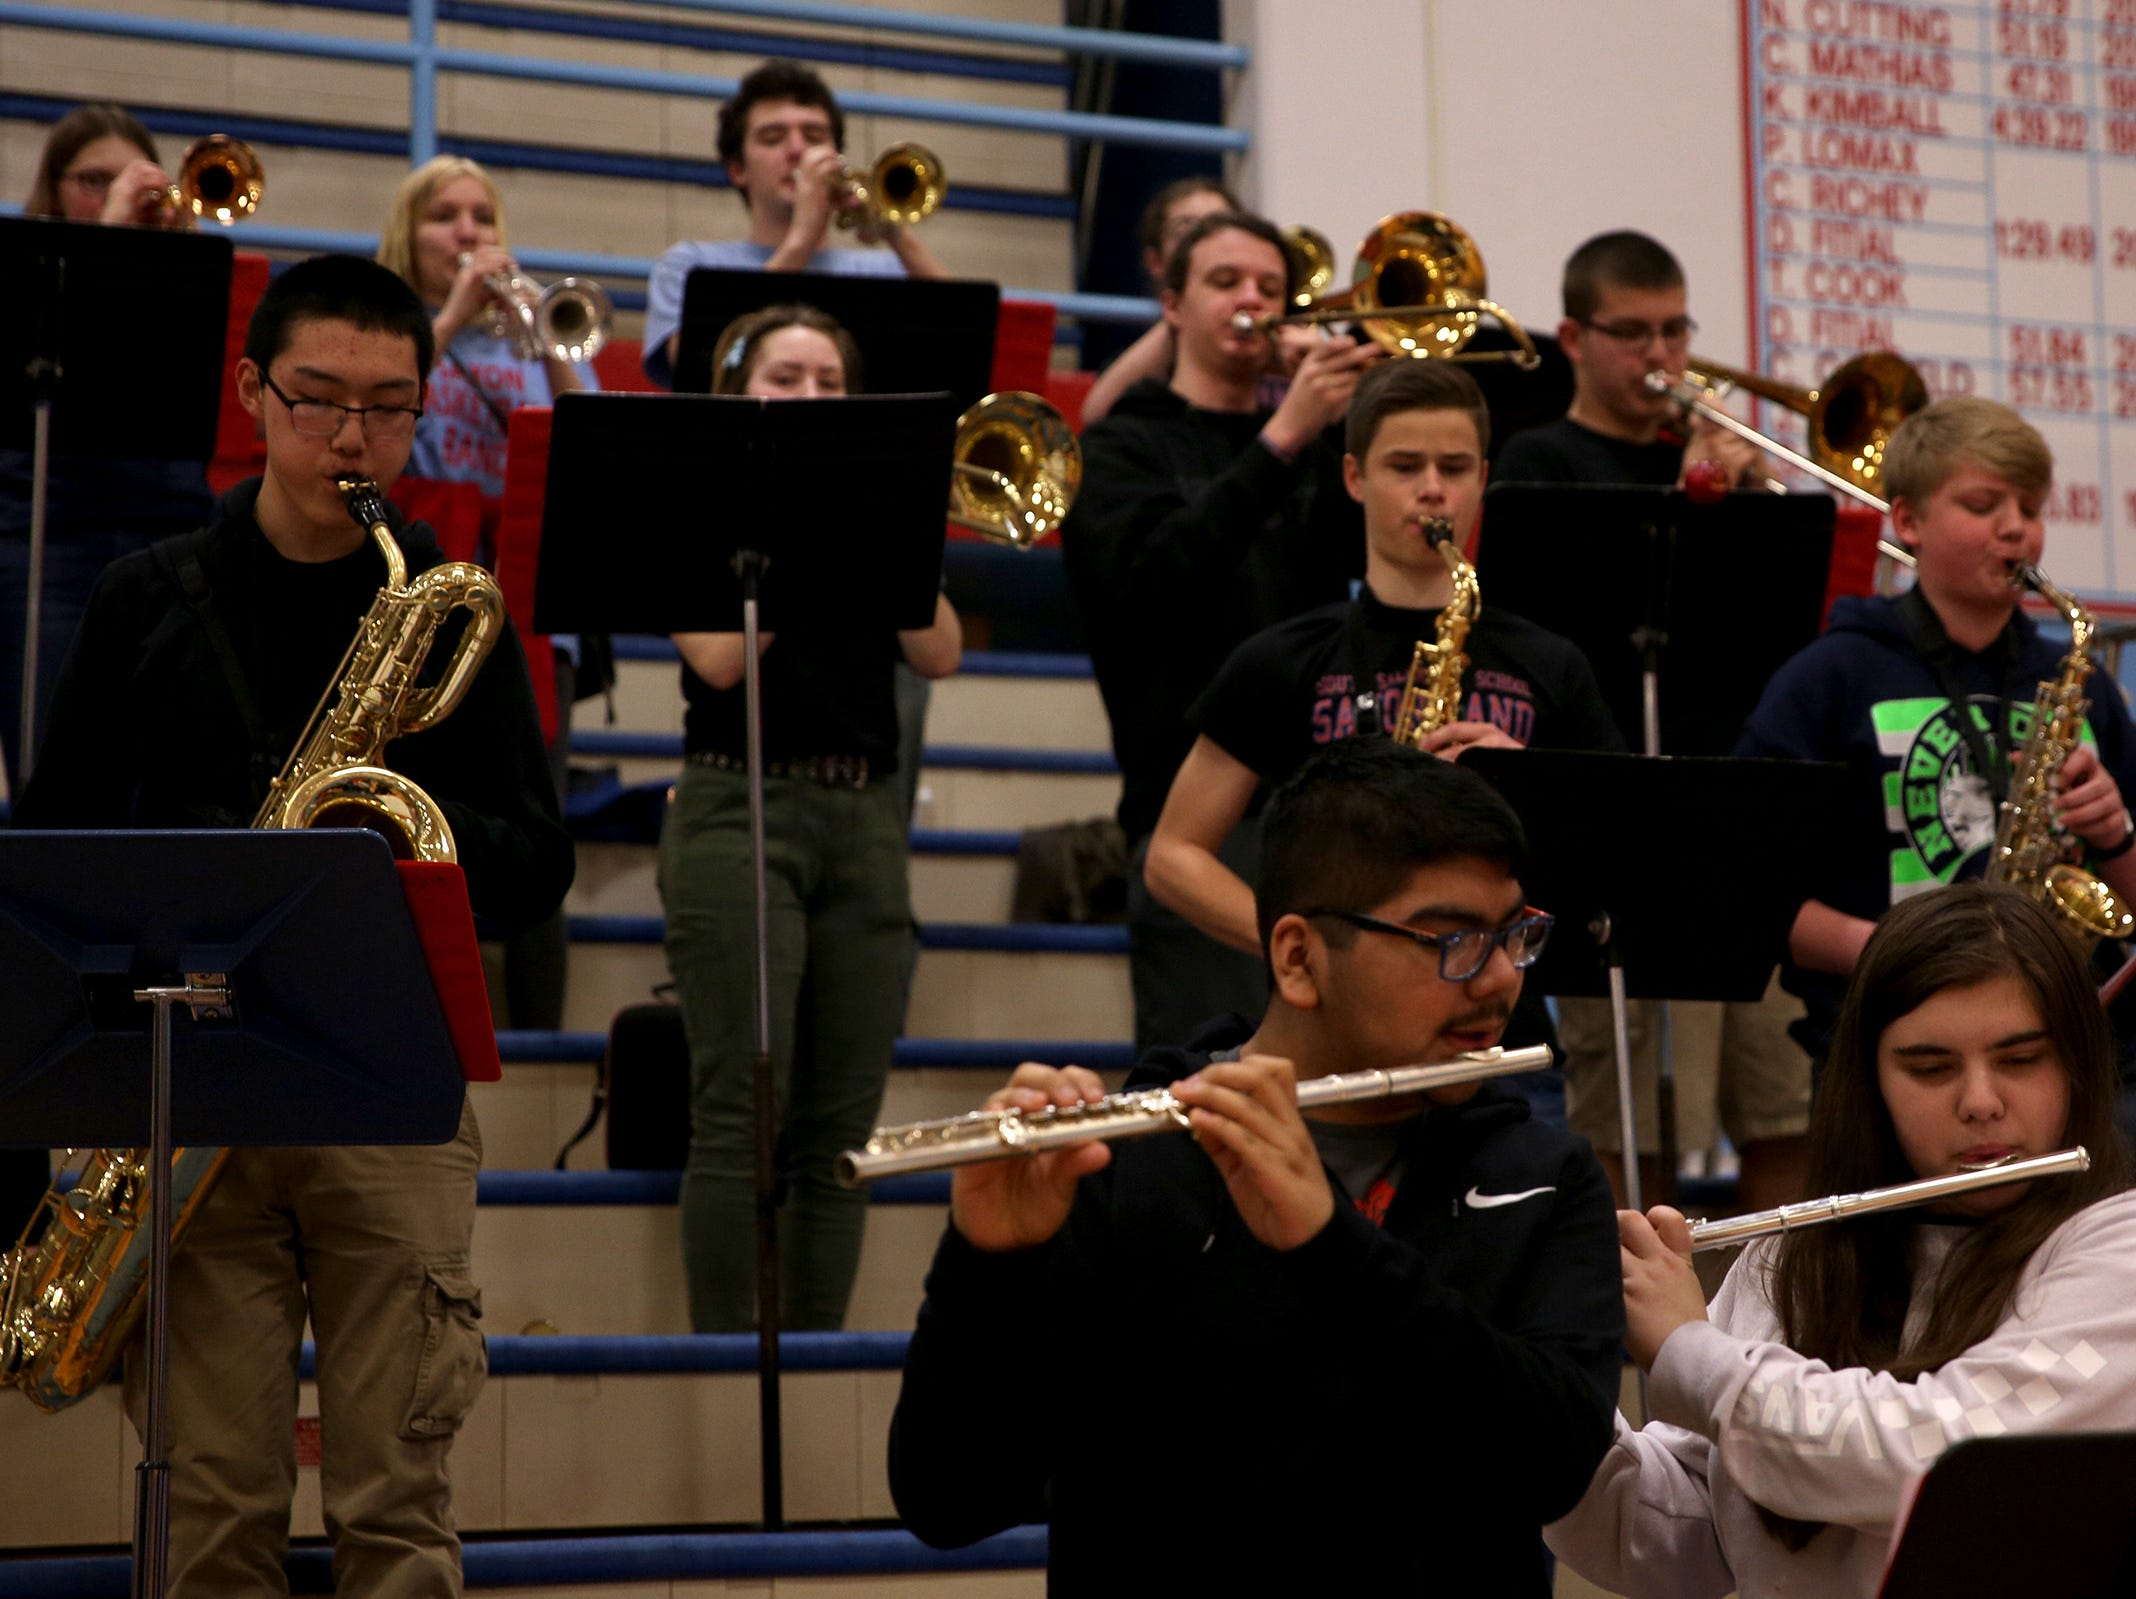 South Salem band students perform the national anthem before the South Salem vs. Mountainside girls basketball OSAA playoff game in Salem on Thursday, Feb. 28, 2019.